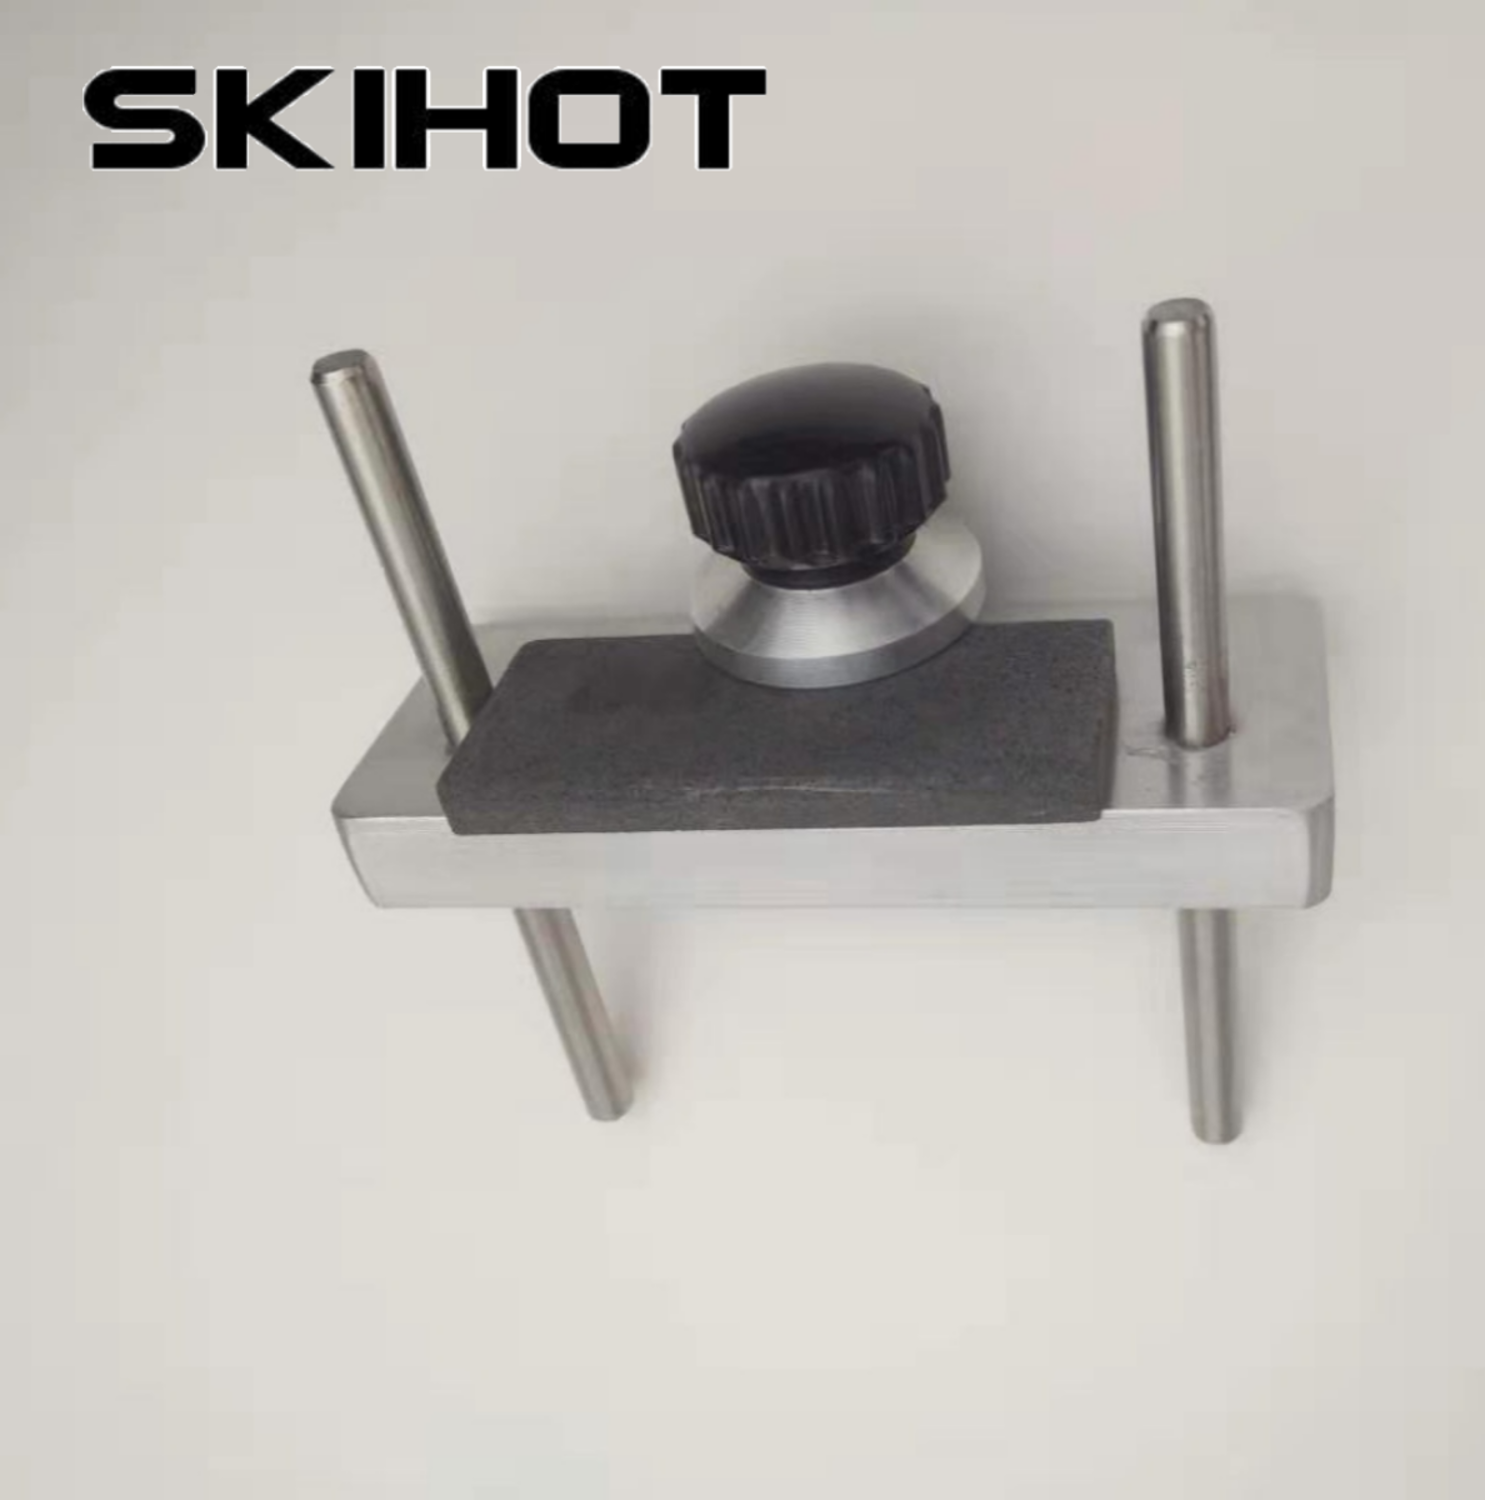 SKIHOT Waved Blade Angle Bar/snowboard Blade Device/trim Edge Tool / 1 ° 2 ° 89 ° 88 °